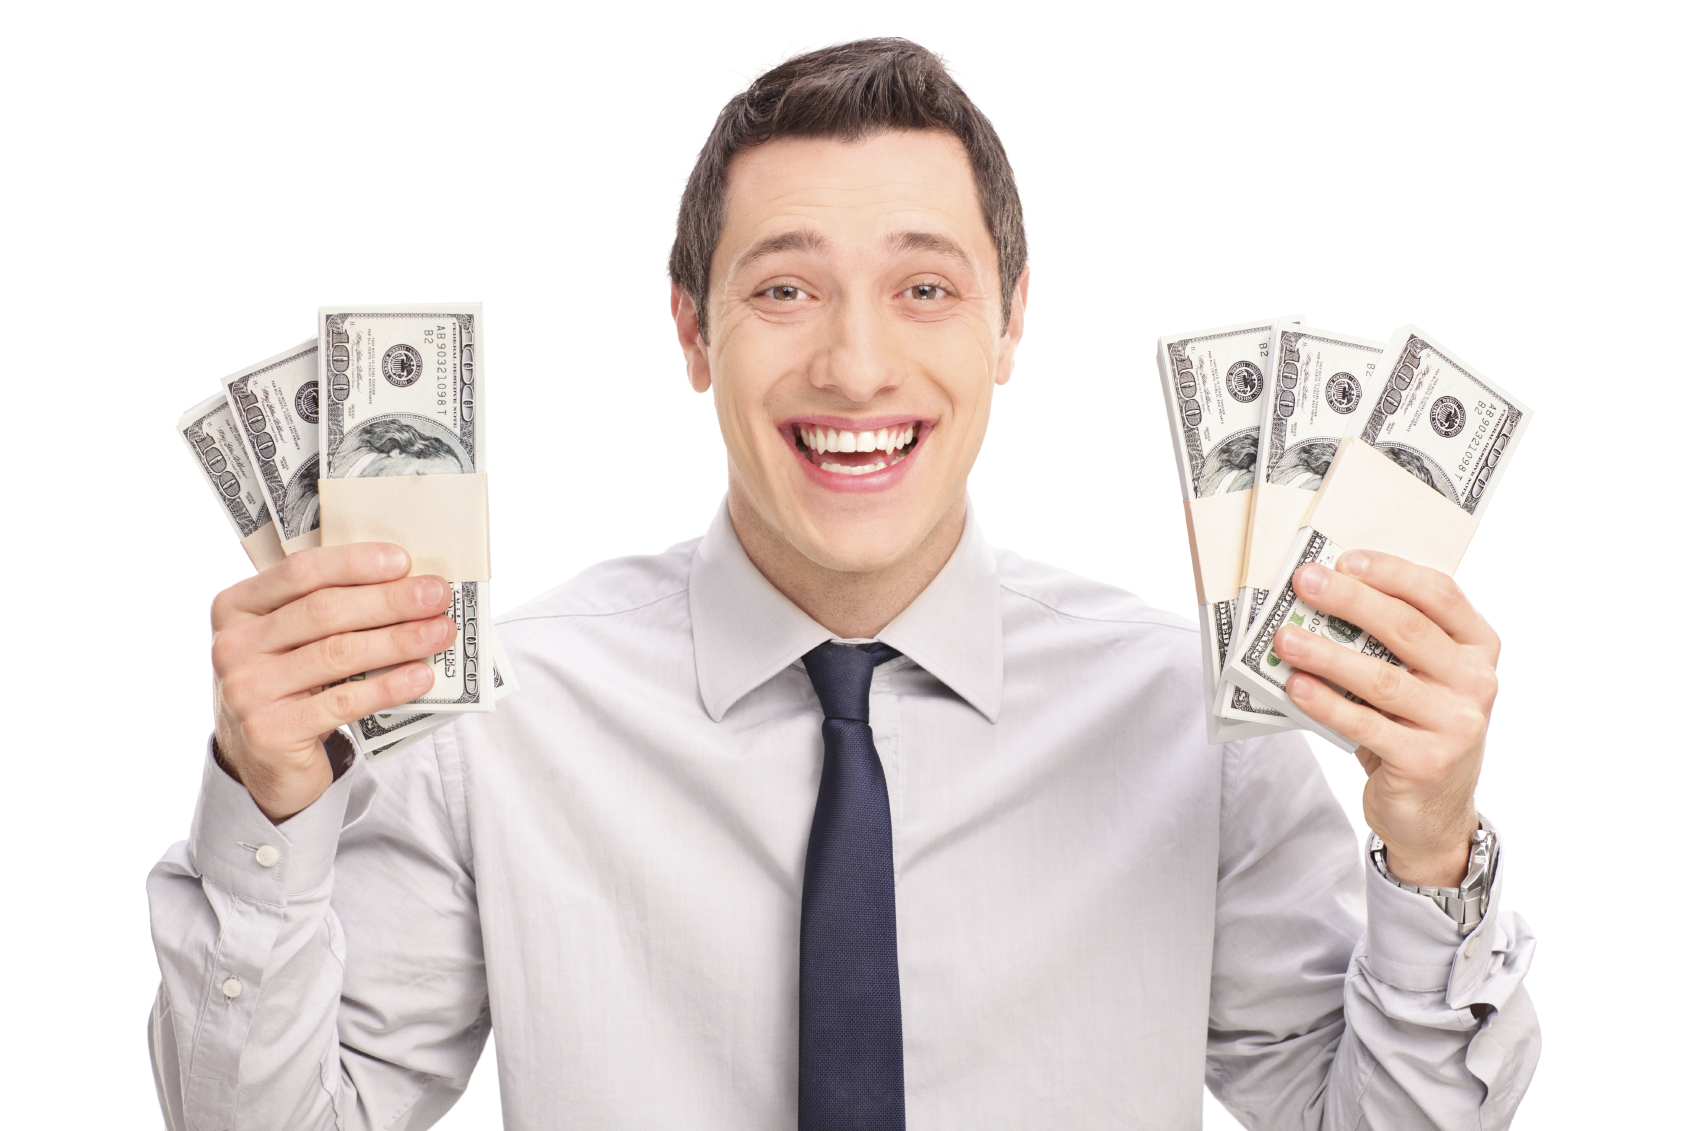 Joyful young man holding six stacks of money